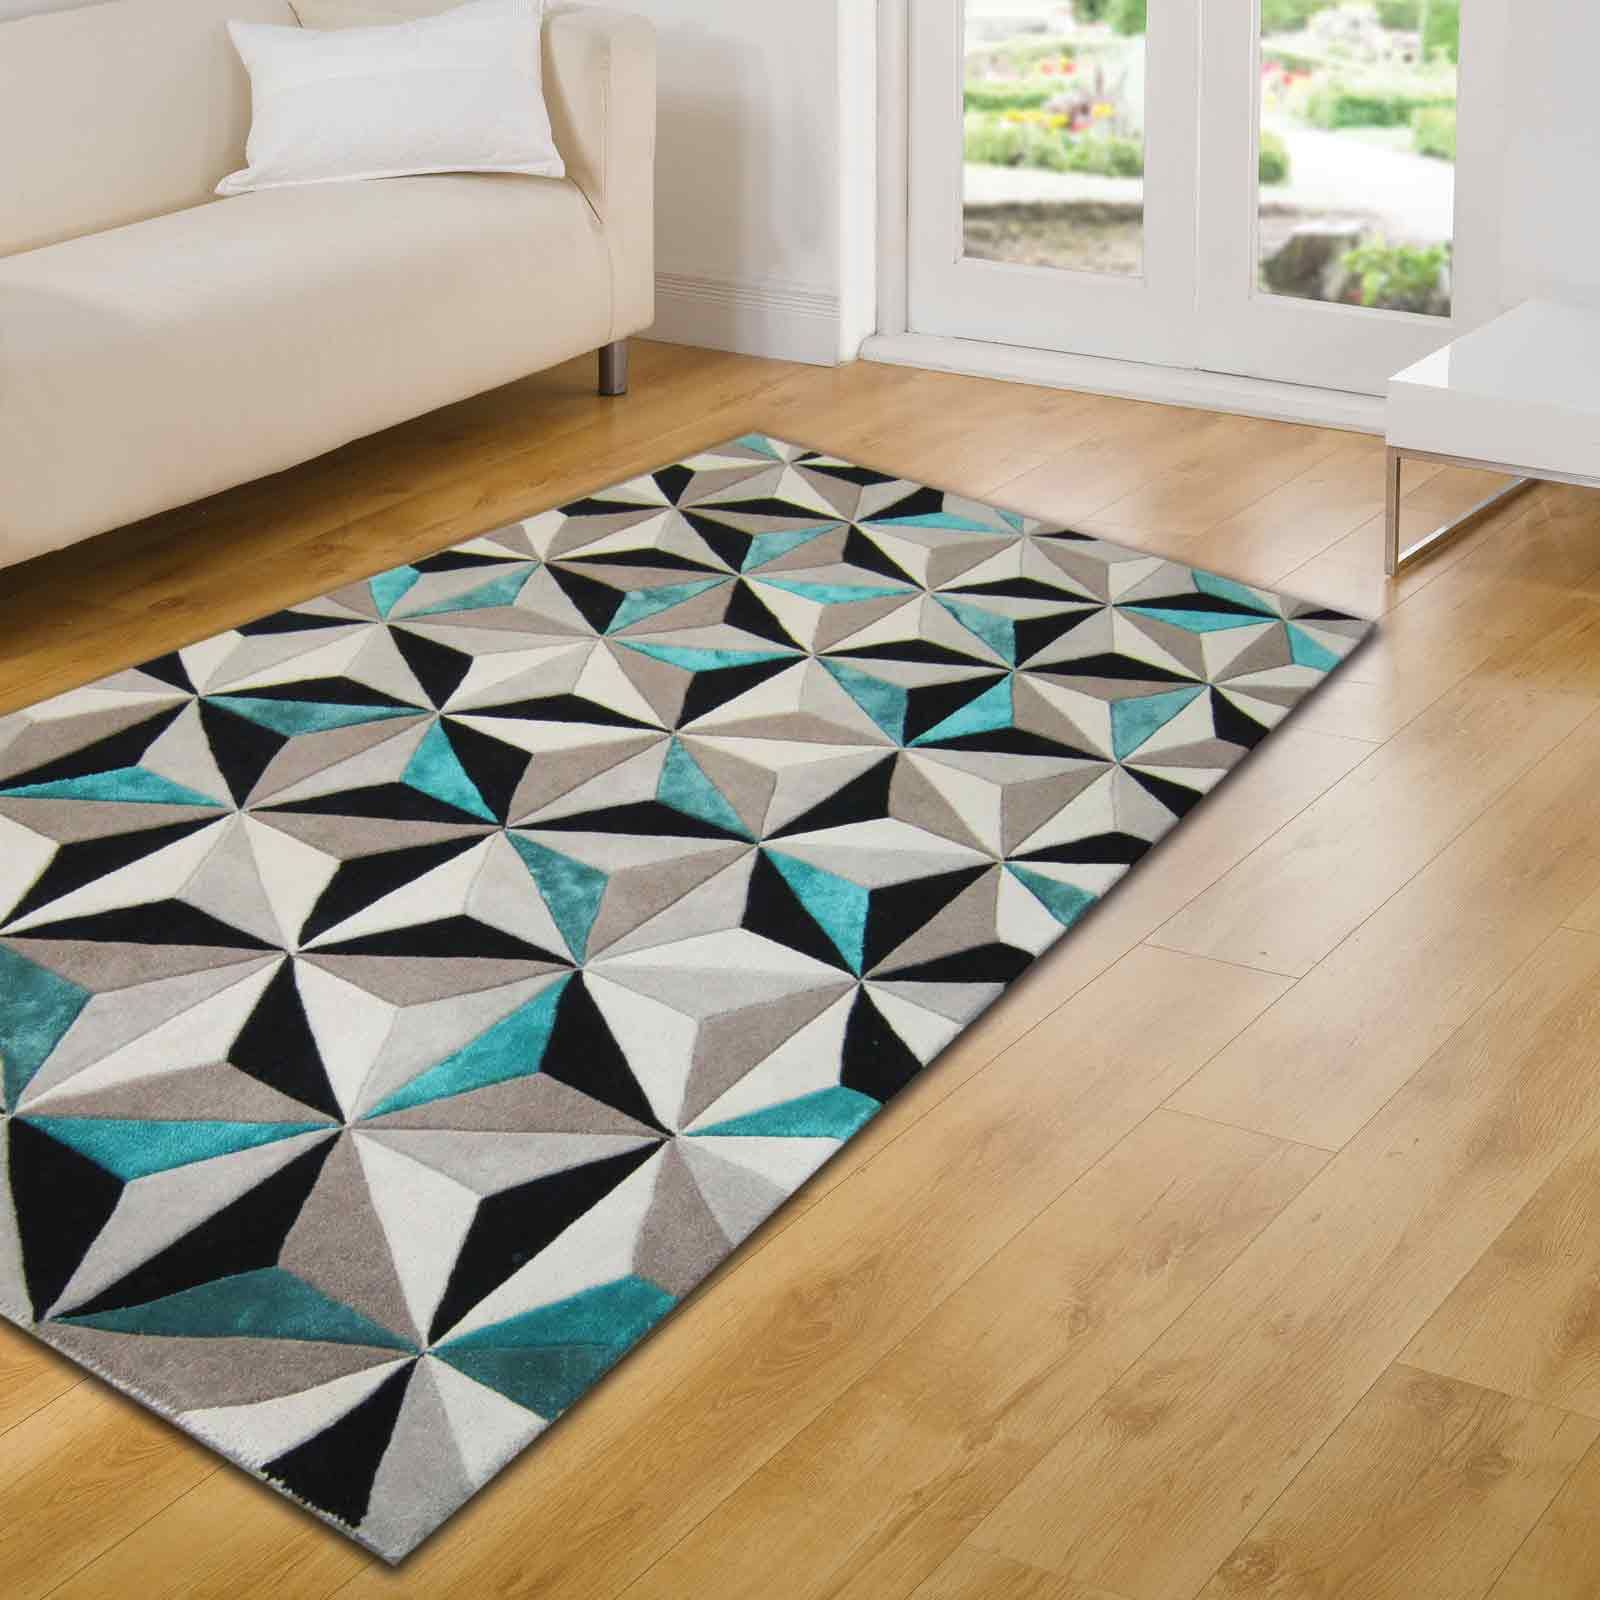 Botanical Collection By Flair Rugs Boasts A Number Of Modern Designs Ranging From Abstract To Geometric With The Most Intric Teal Rug Cheap Rugs Rugs On Carpet